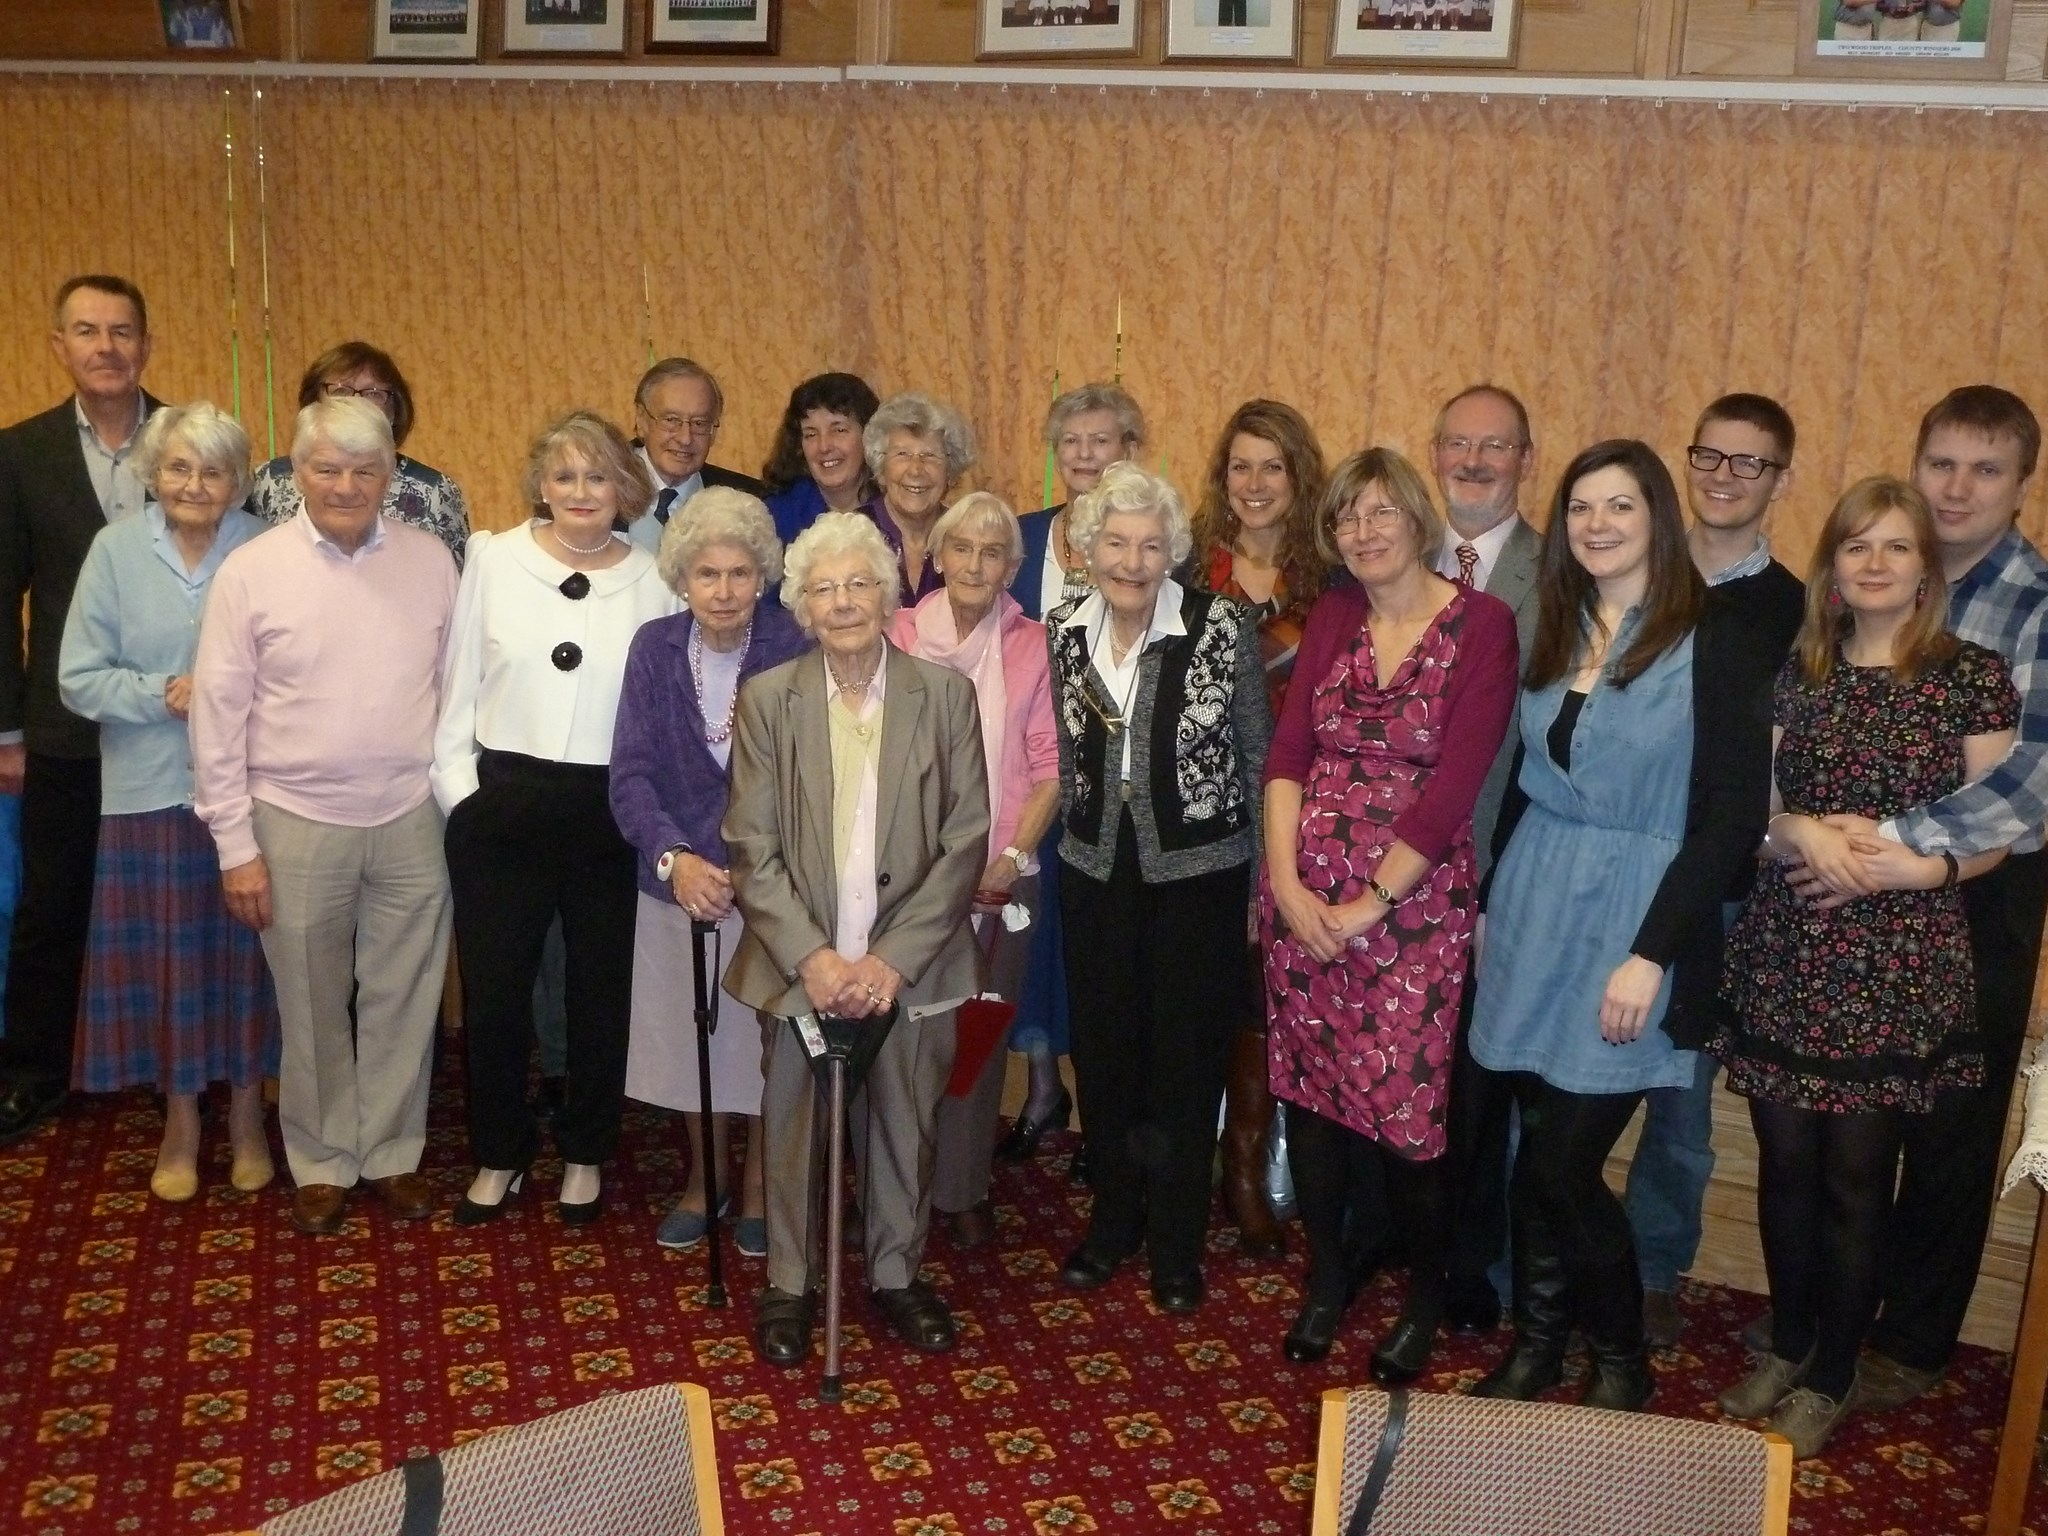 2015-01.25 Mum's 90th at Palmerstone family and friends